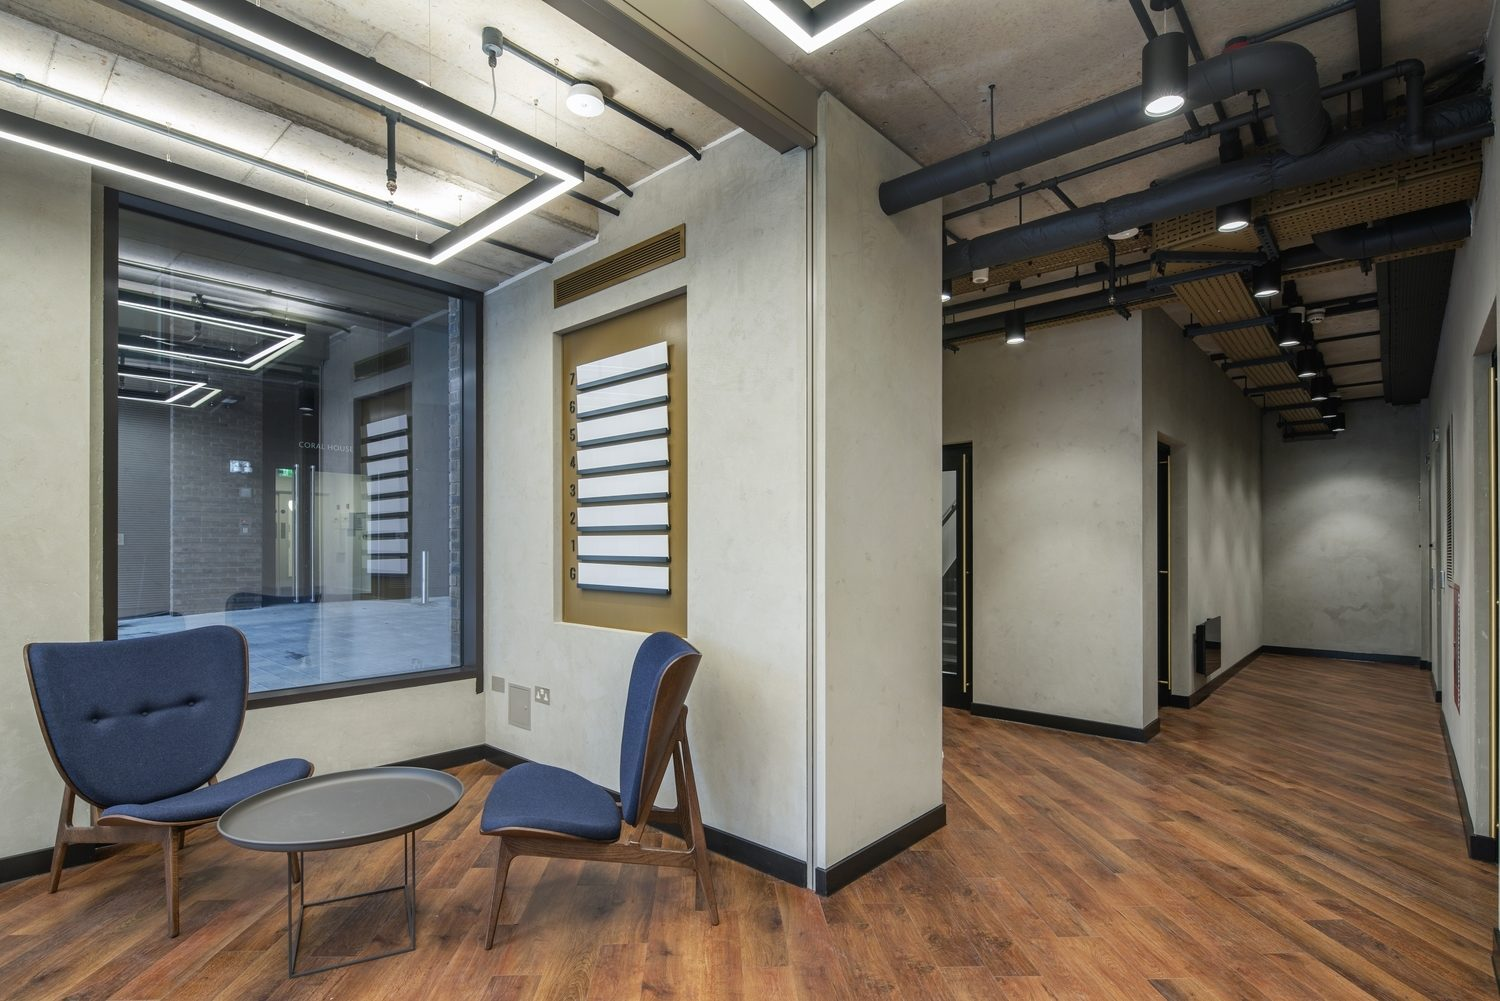 Cally Yard comunal workspace design